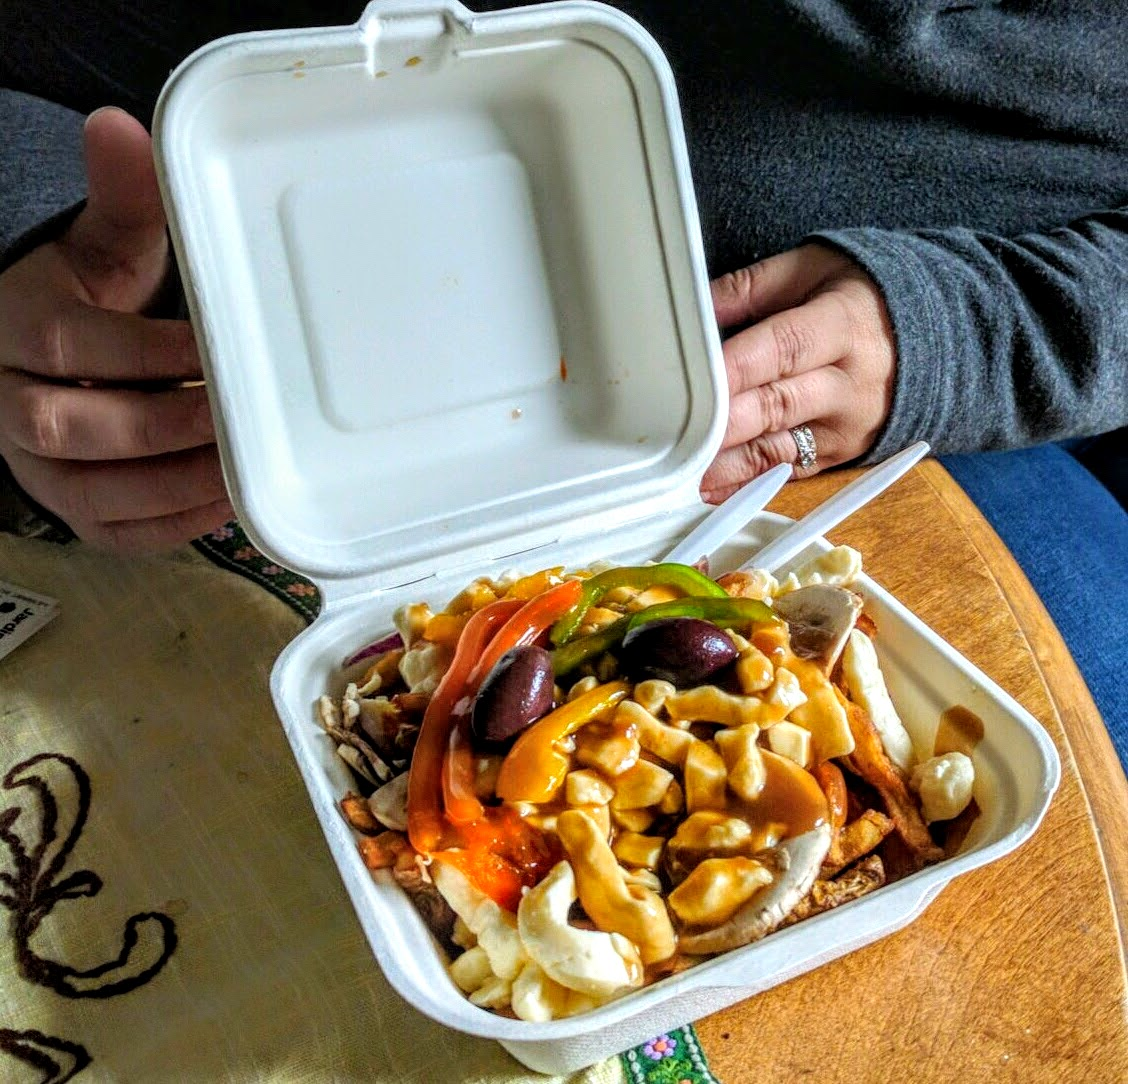 No trip to Montreal would be complete without some yummy poutine :)